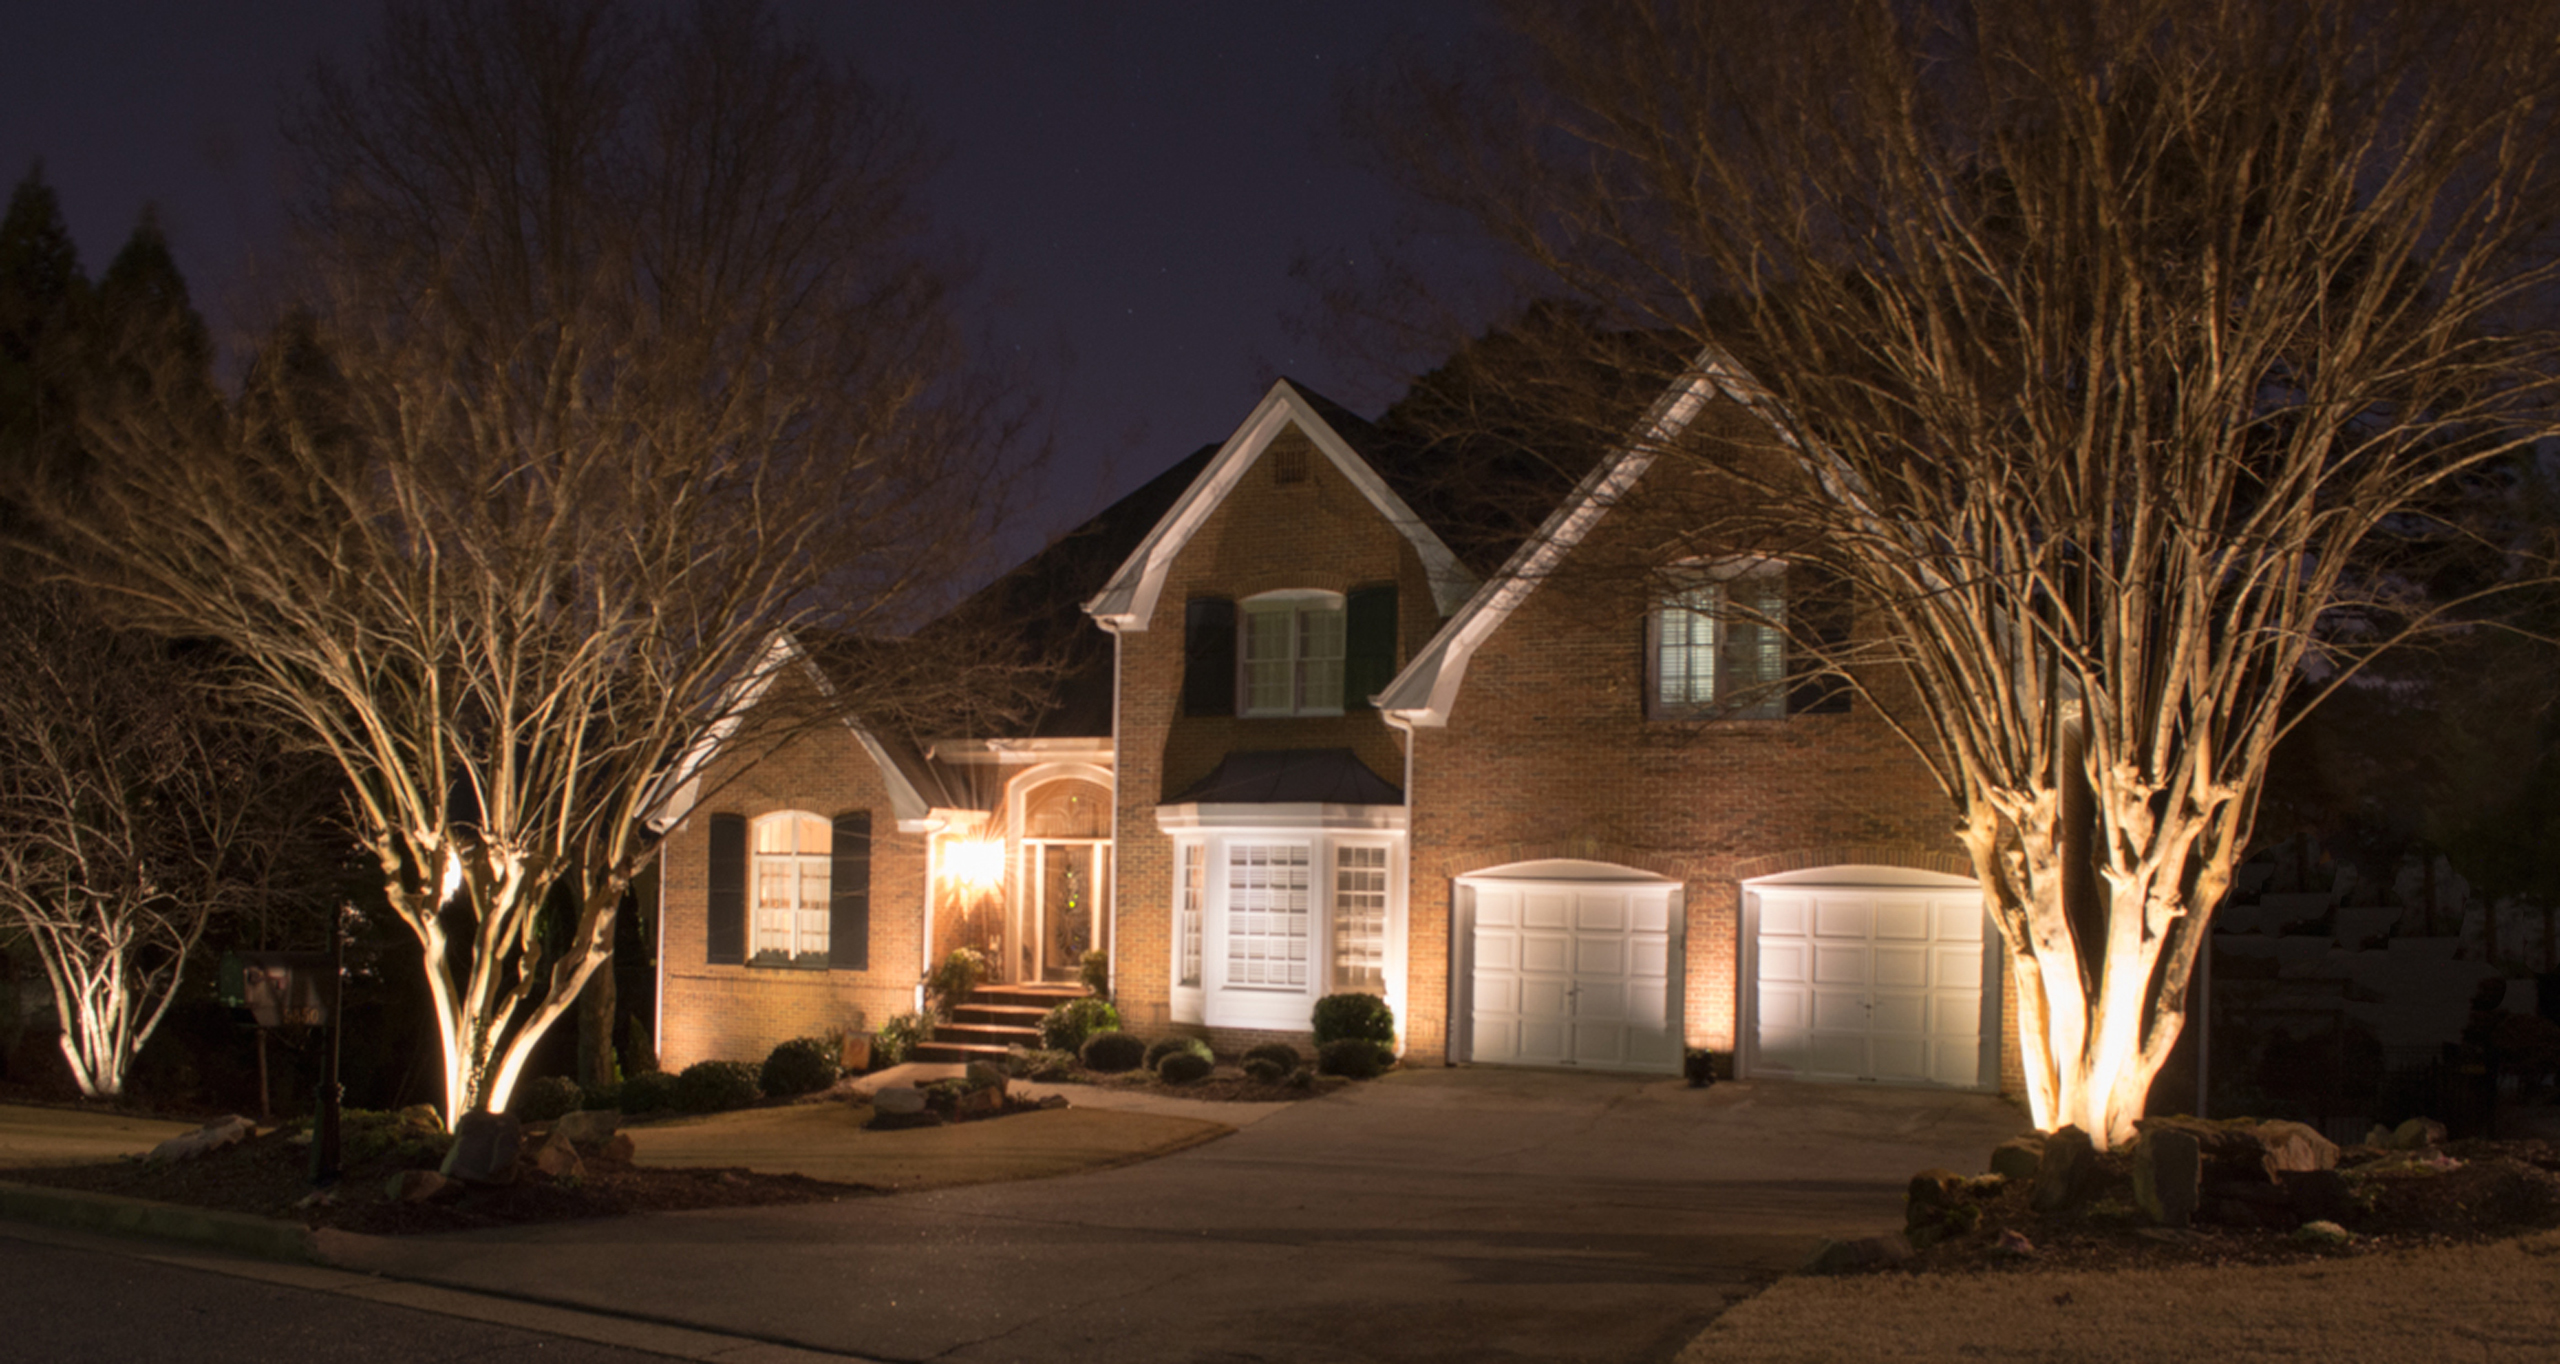 Landscape lighting installation in atlanta georgia abulous lighting alpharetta outdoor lights aloadofball Images